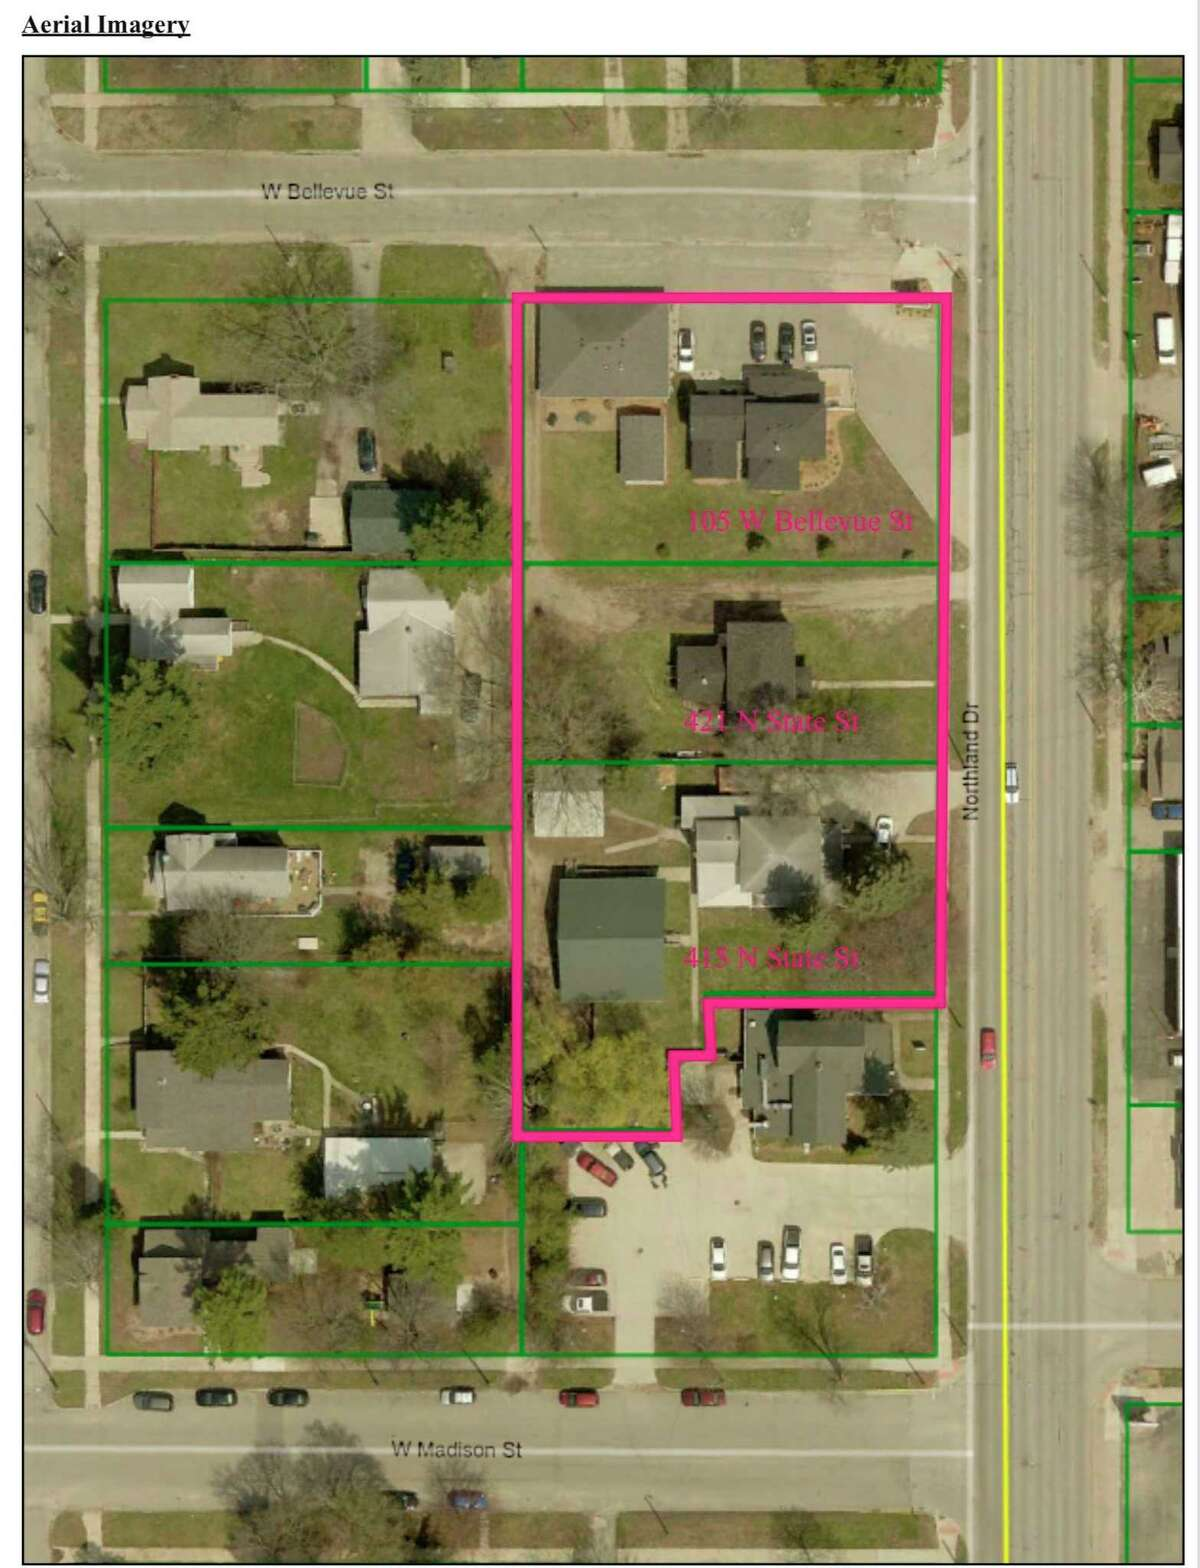 Krist Oil Company, Inc. requested the area outline in pink be rezoned from RR Restricted Residential to C3 Commercial for the purpose of putting a gas station and convenience story on the property. (Photo courtesy of Big Rapids planning commission)